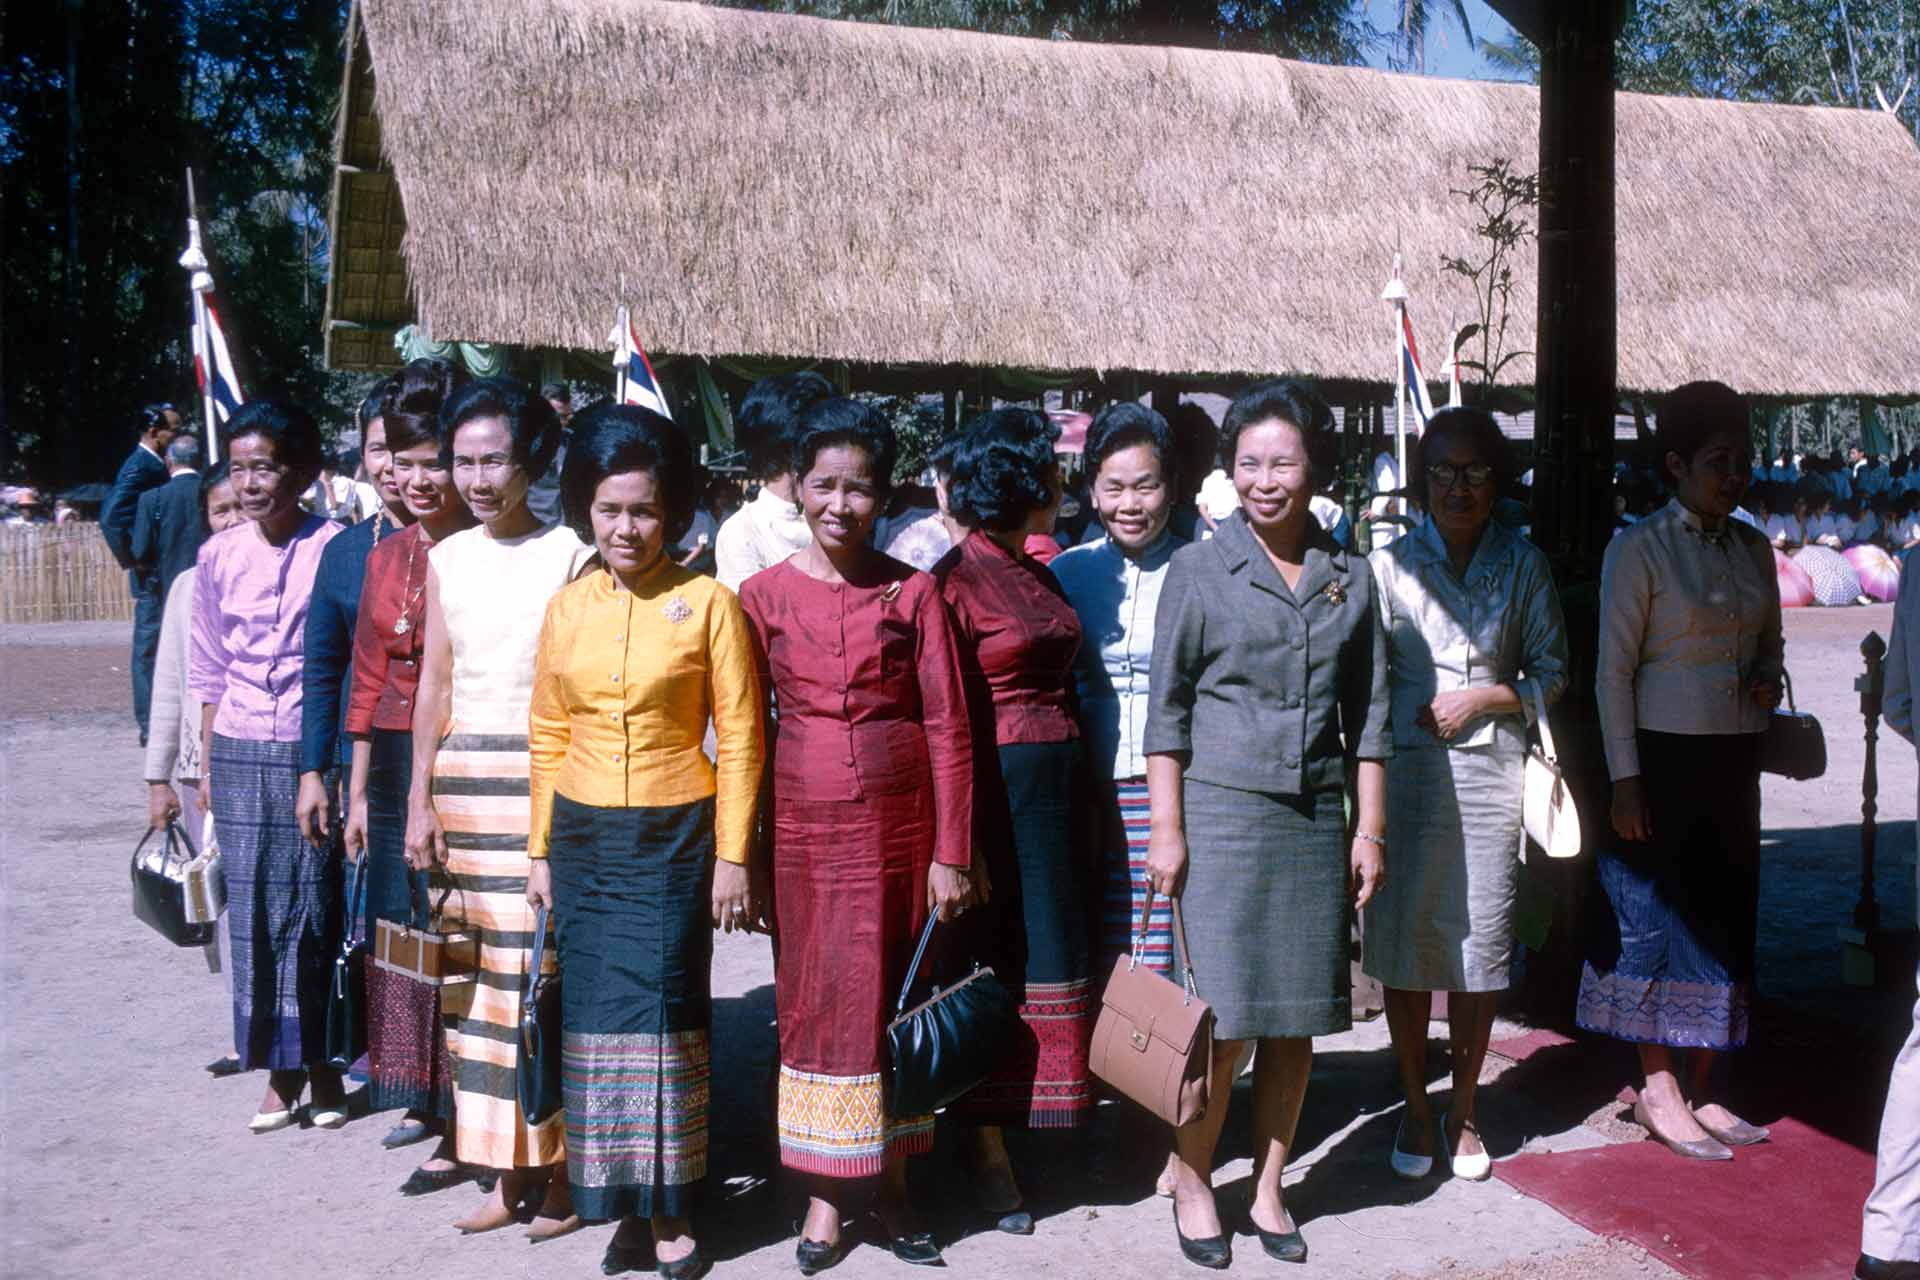 A group of Thai women dressed in formal western-type attire